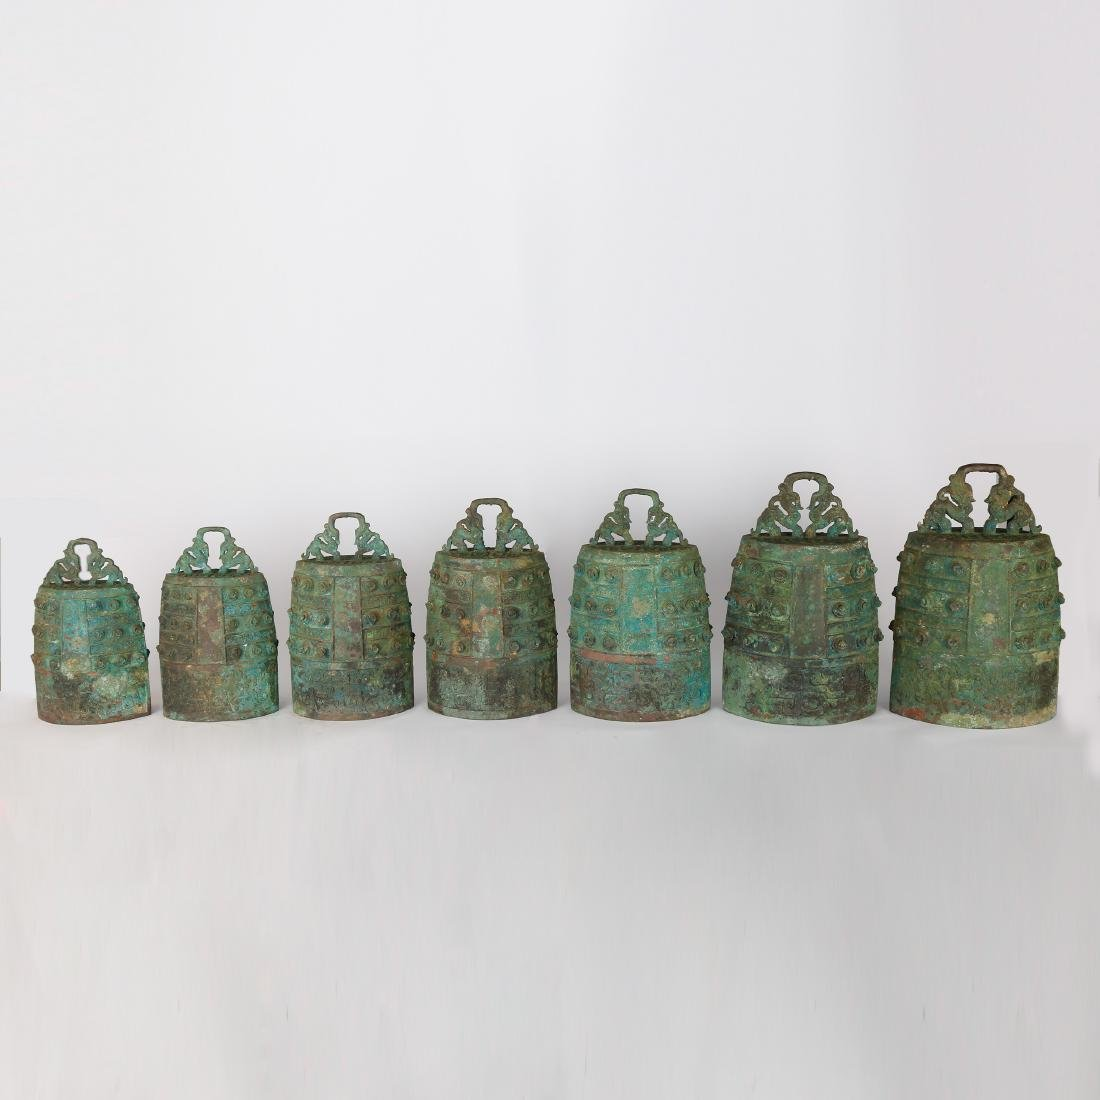 CHINESE ARCHAIC STYLE BRONZE BELLS - 2